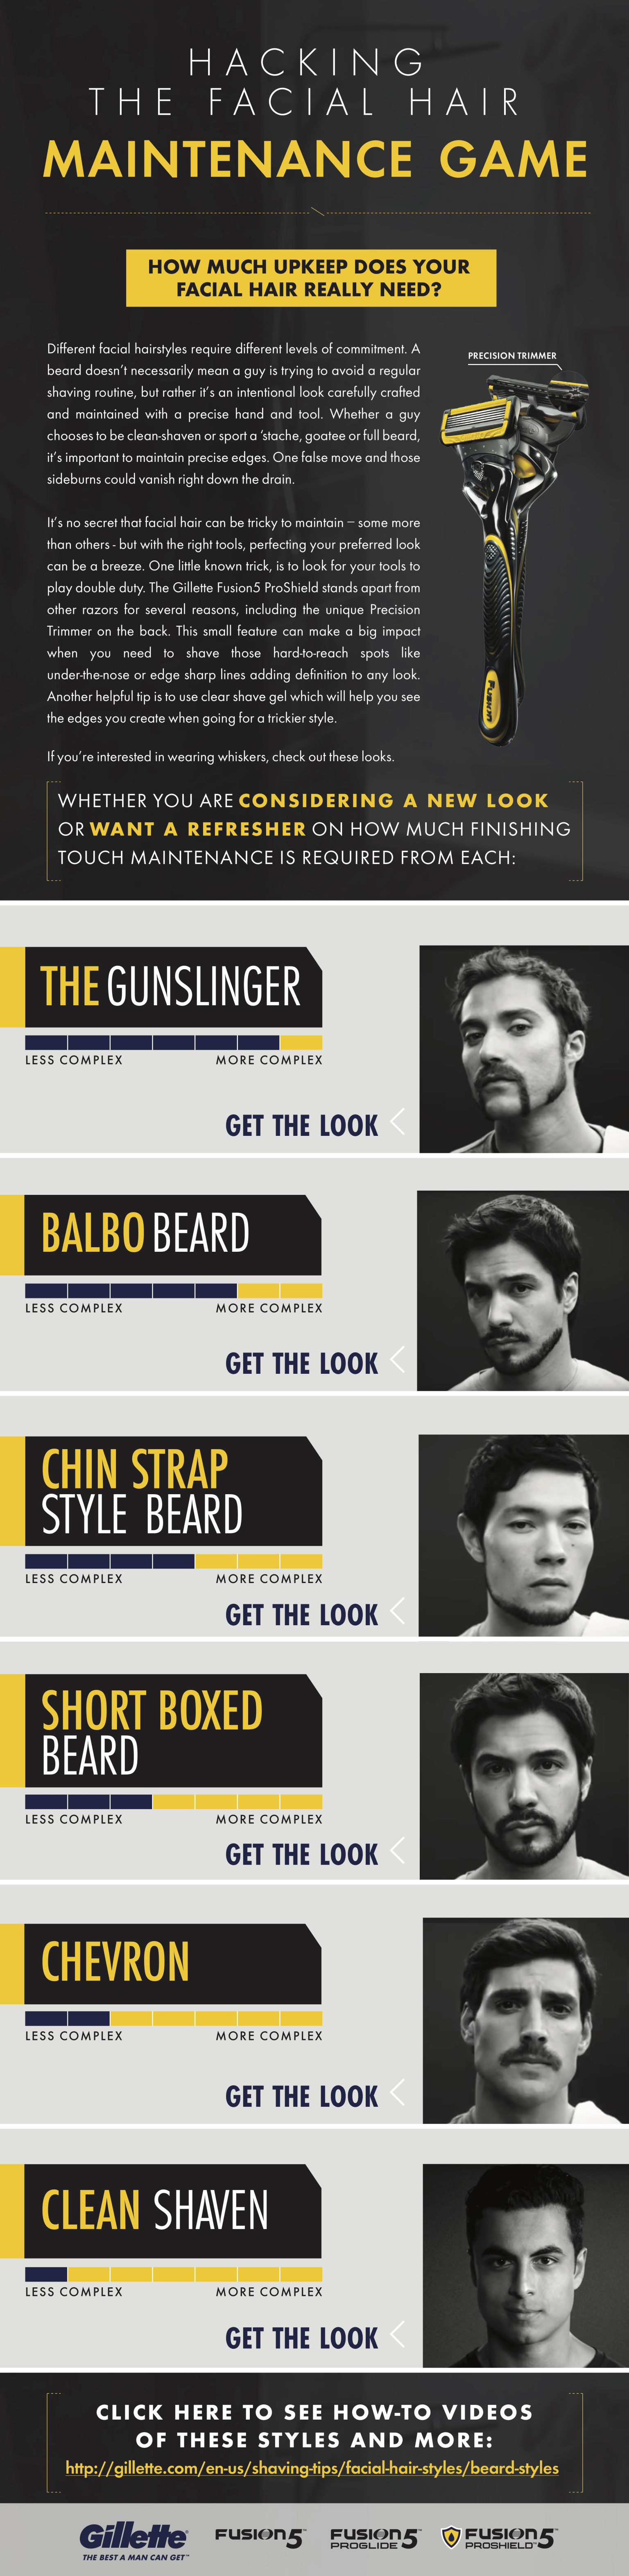 Gillette Infographic